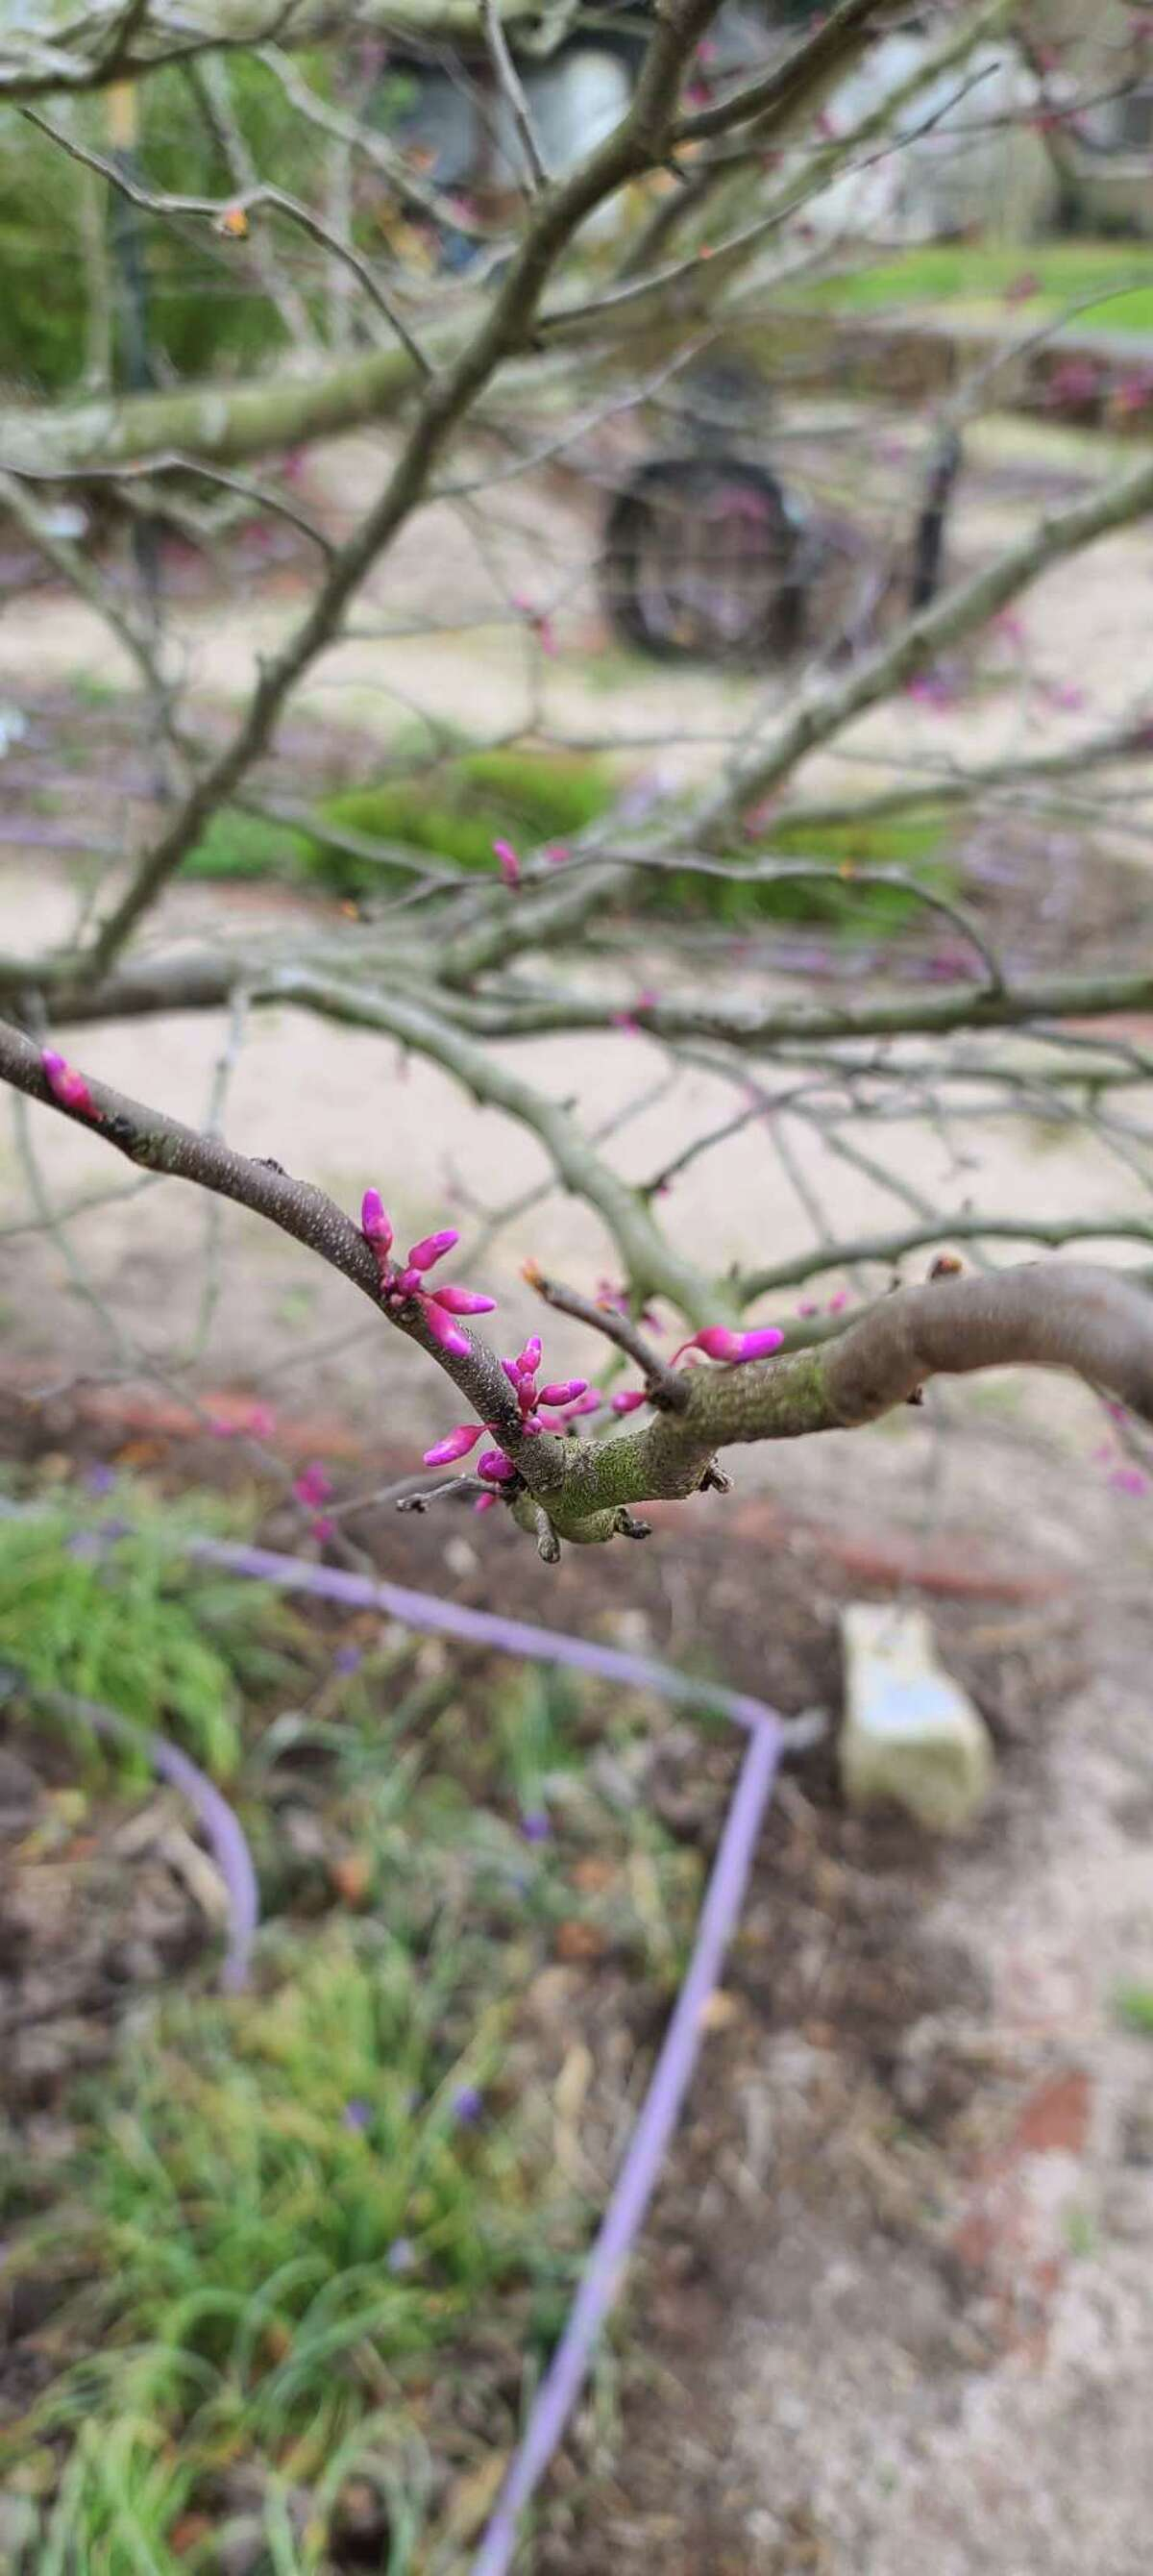 Blooms on a redbud plant signal the coming of spring.